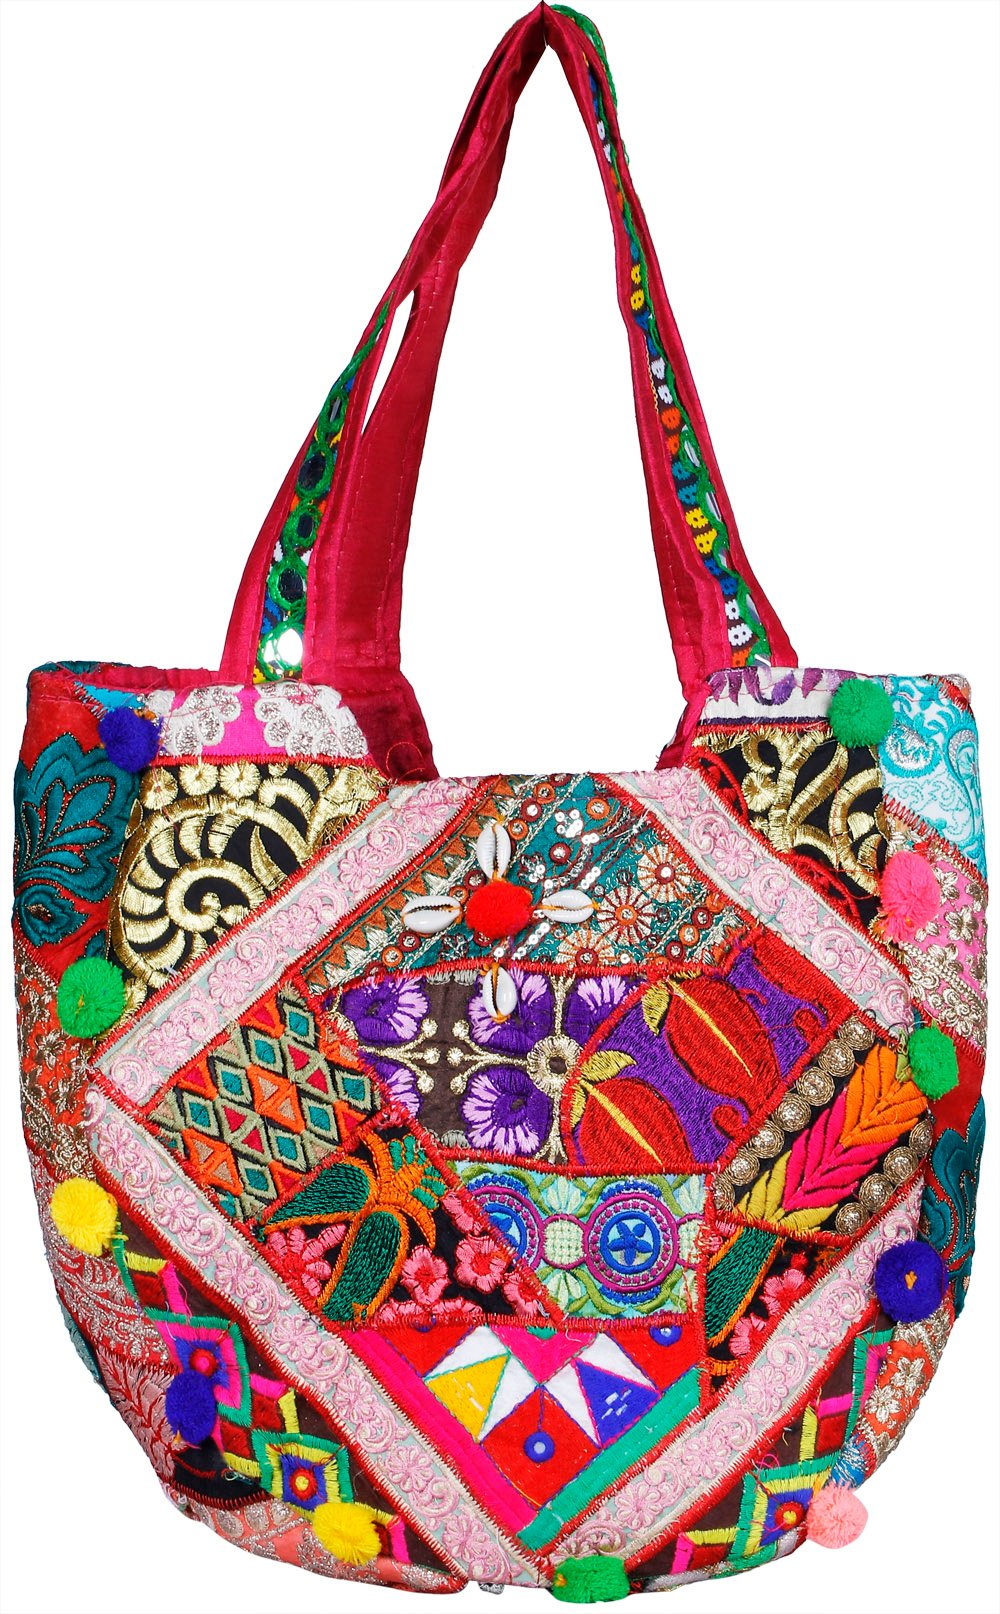 Multicolored shopper bag from kutch with dense embroidery